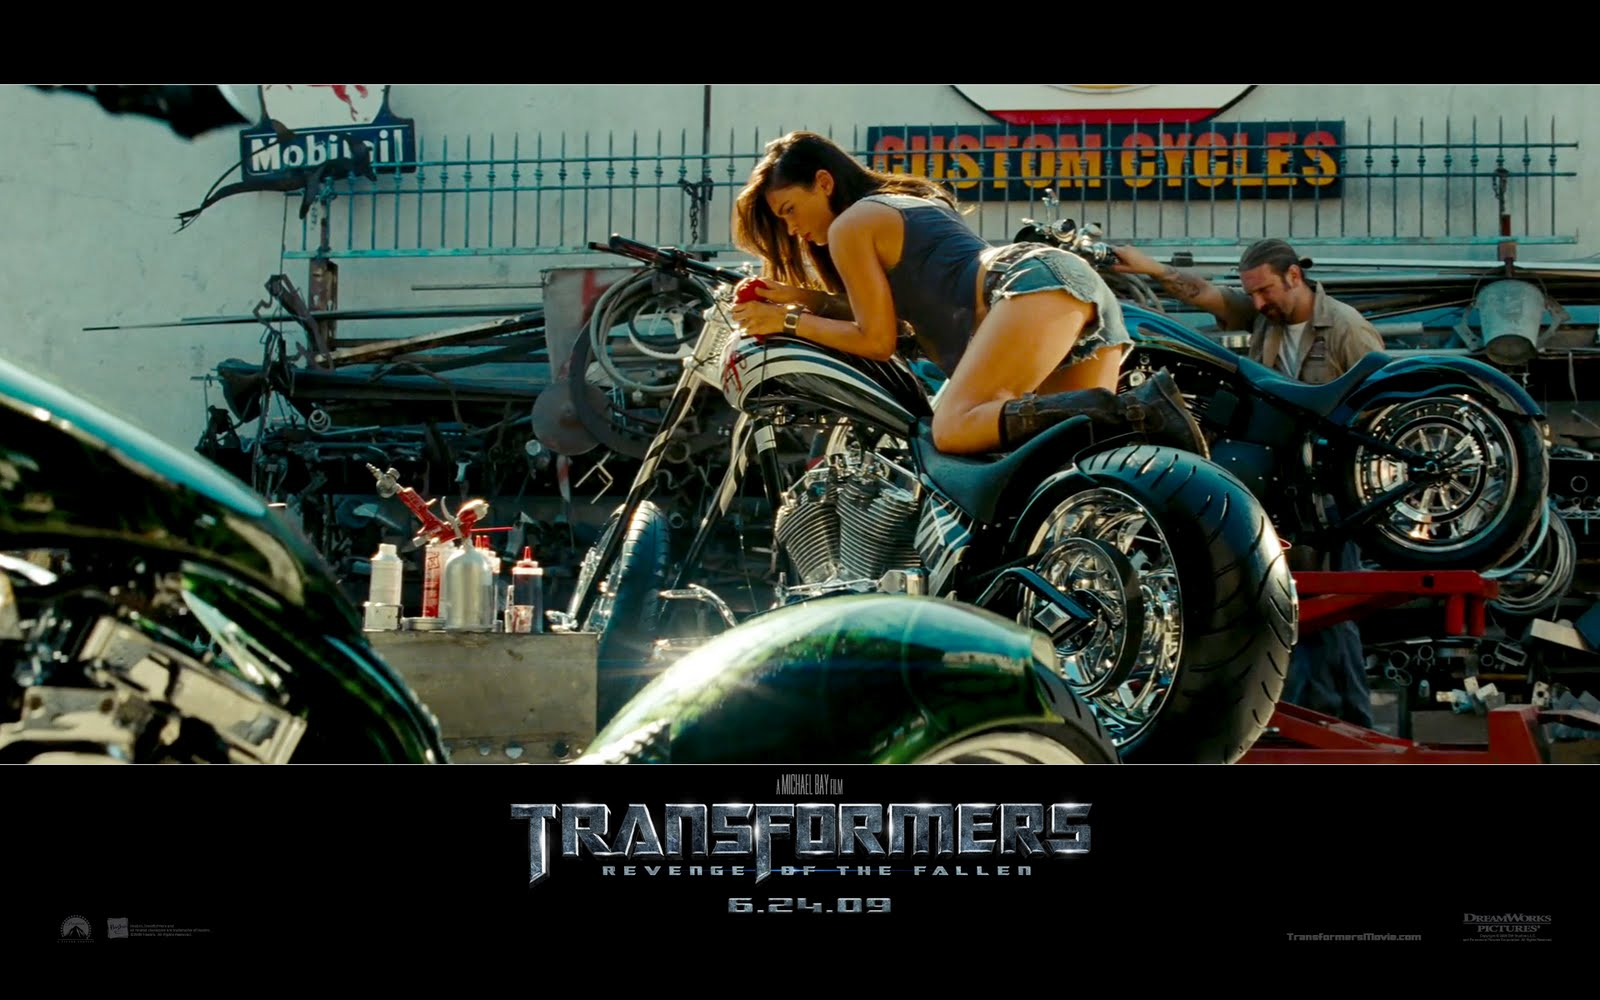 http://3.bp.blogspot.com/-ZAT2Sj0FjZQ/T0Uya48l8ZI/AAAAAAAABQA/3UJJ1A9j5kM/s1600/megan-fox-on-bike-in-transformers-revenge-of-the-fallen-wallpaper.jpg